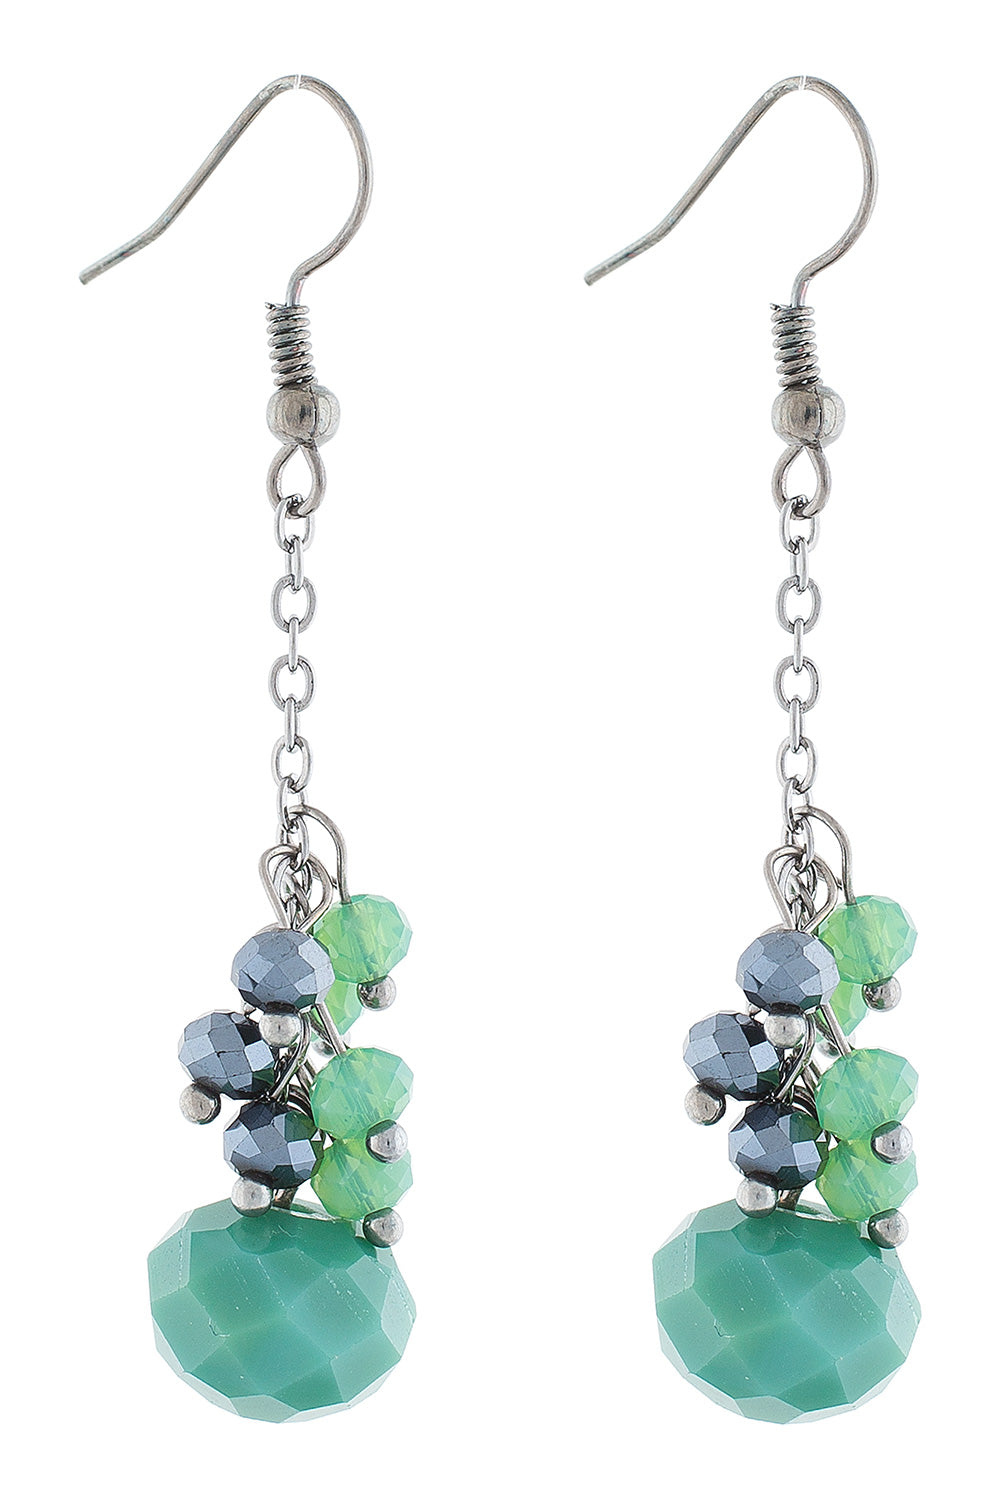 Type 2 Grapevine Earrings